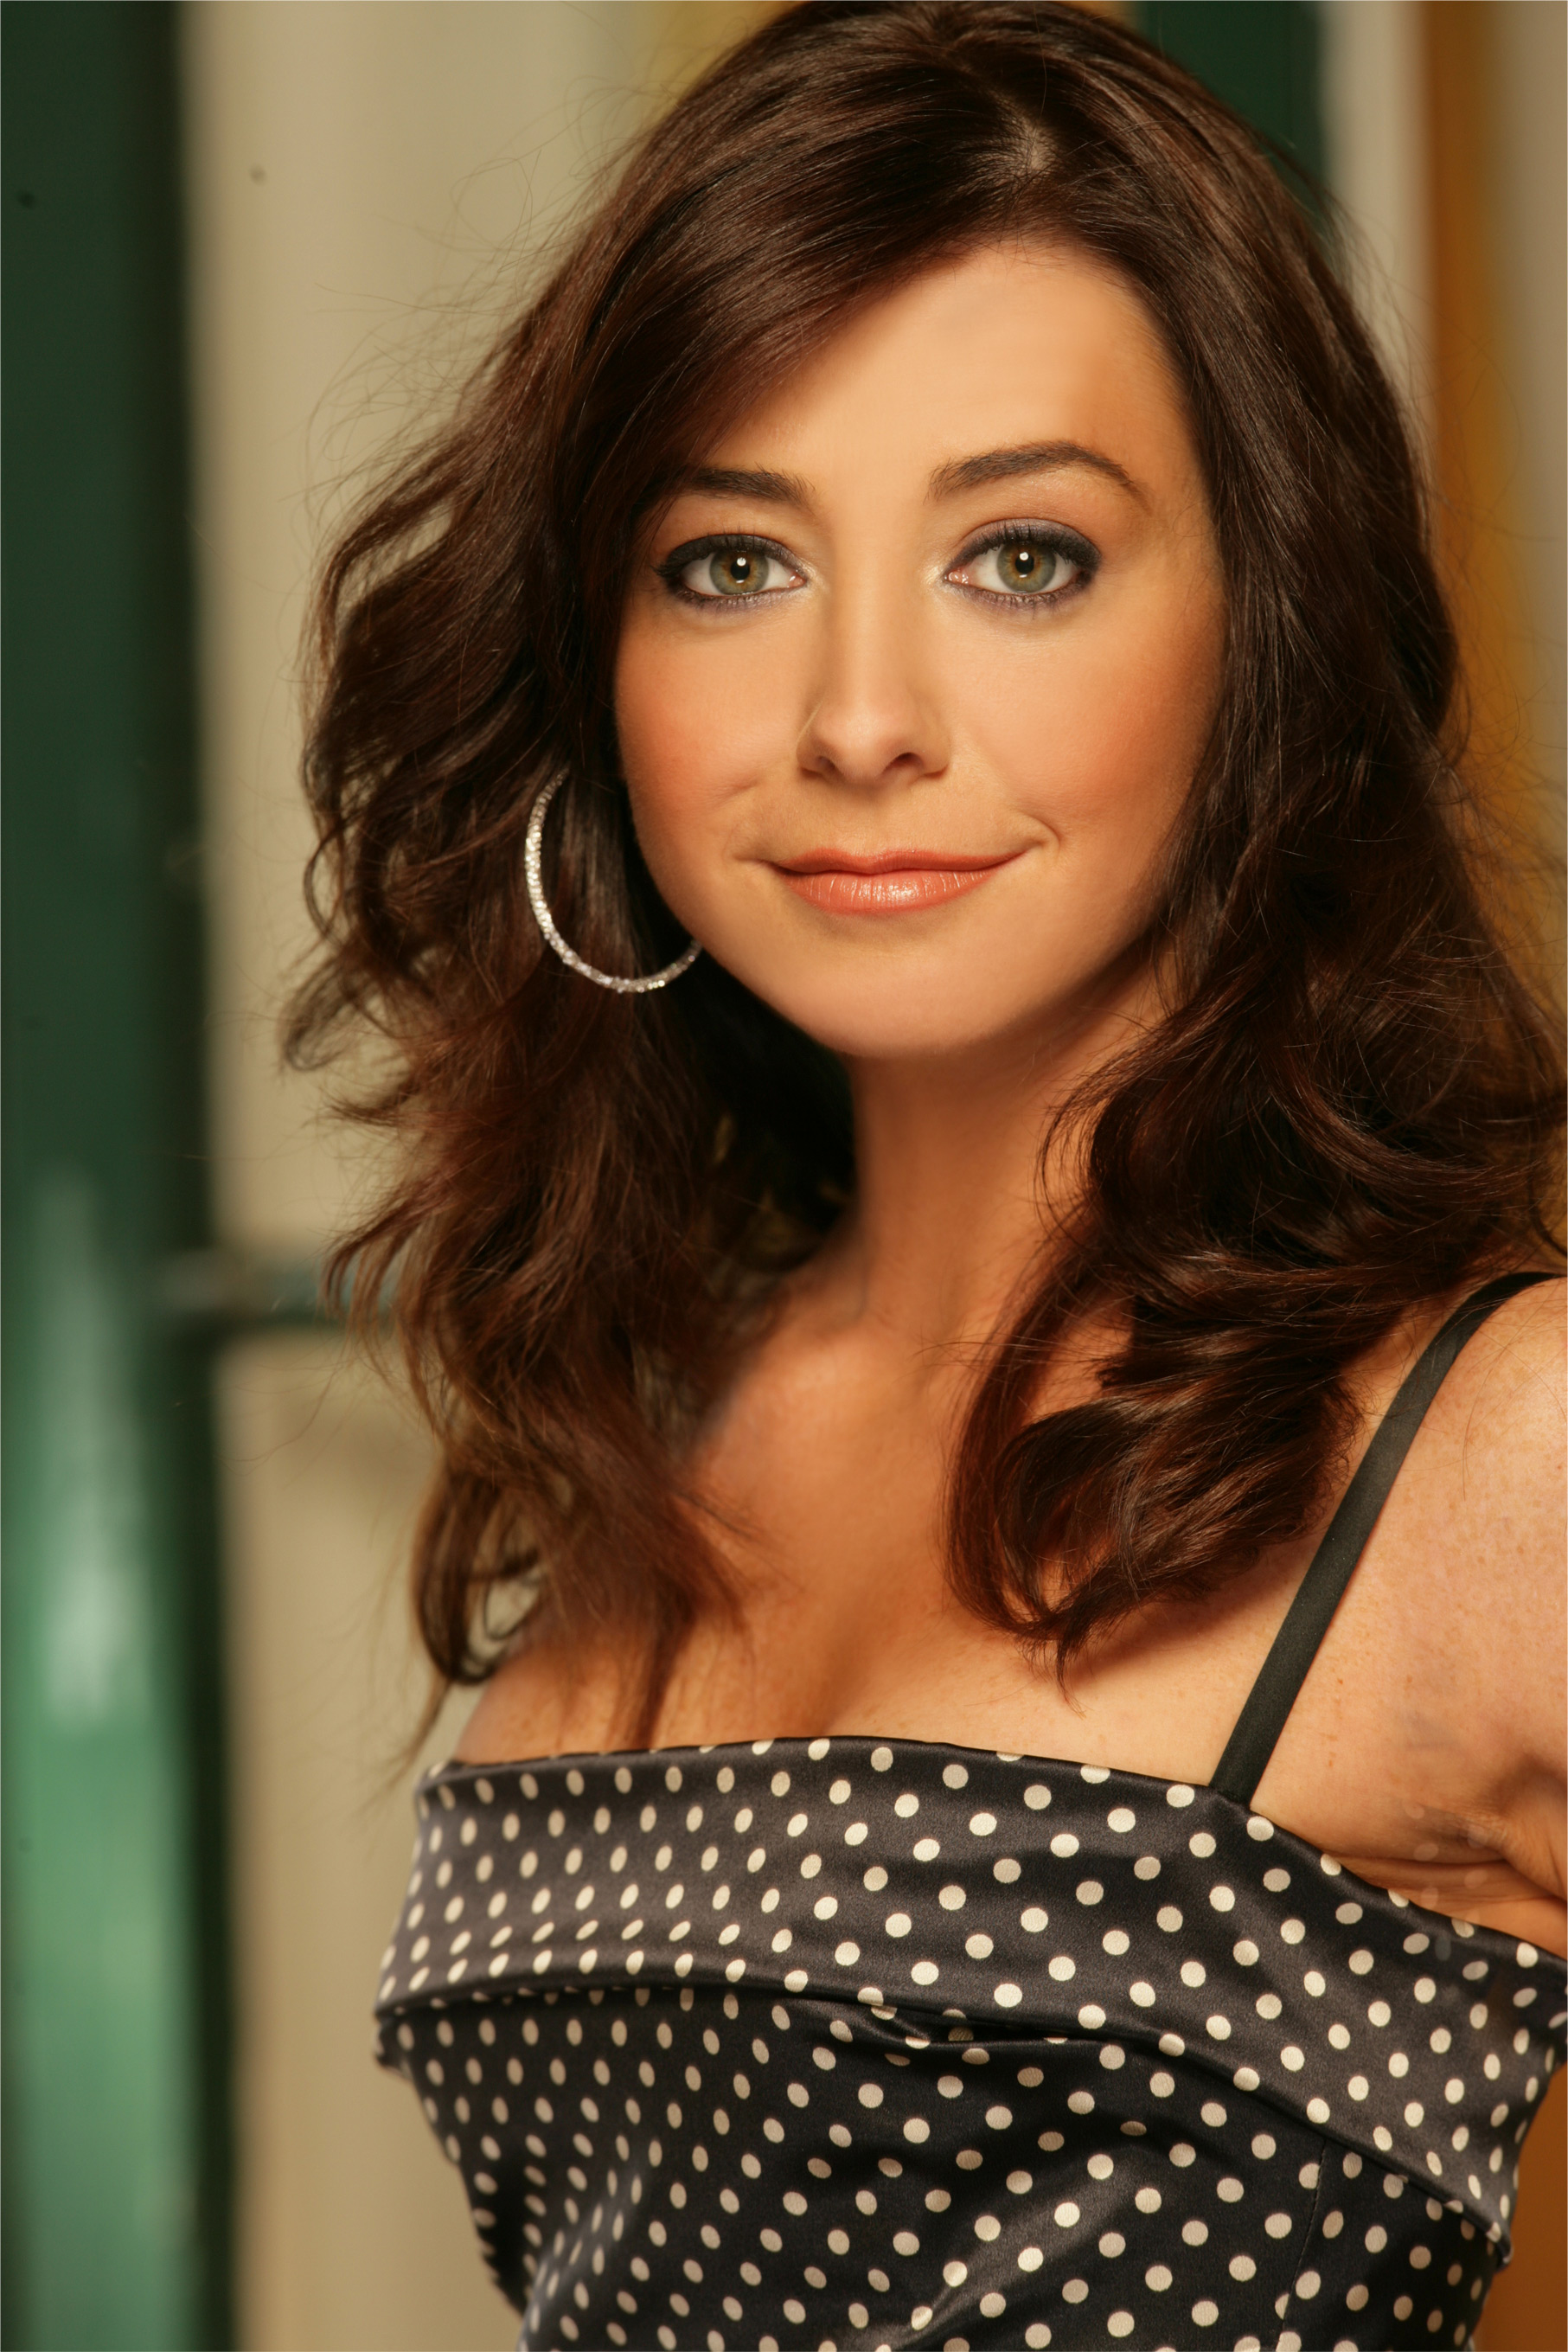 How I Met Your Mother himym Alyson Hannigan Cobie Smulders ...